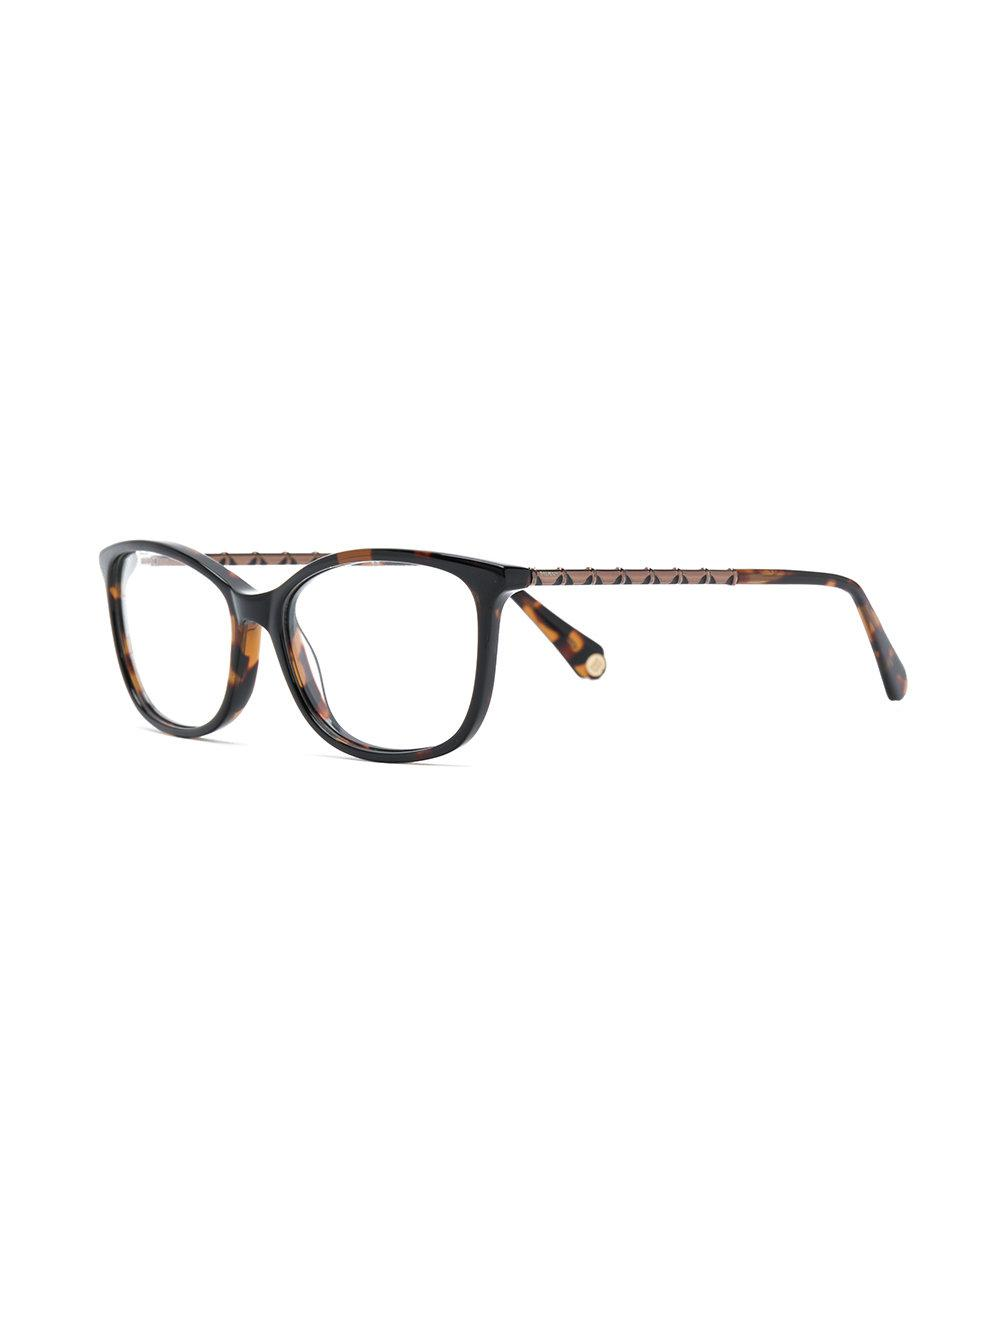 e496bbe564132 Balmain Tortoiseshell Effect Eye Glasses in Brown - Lyst